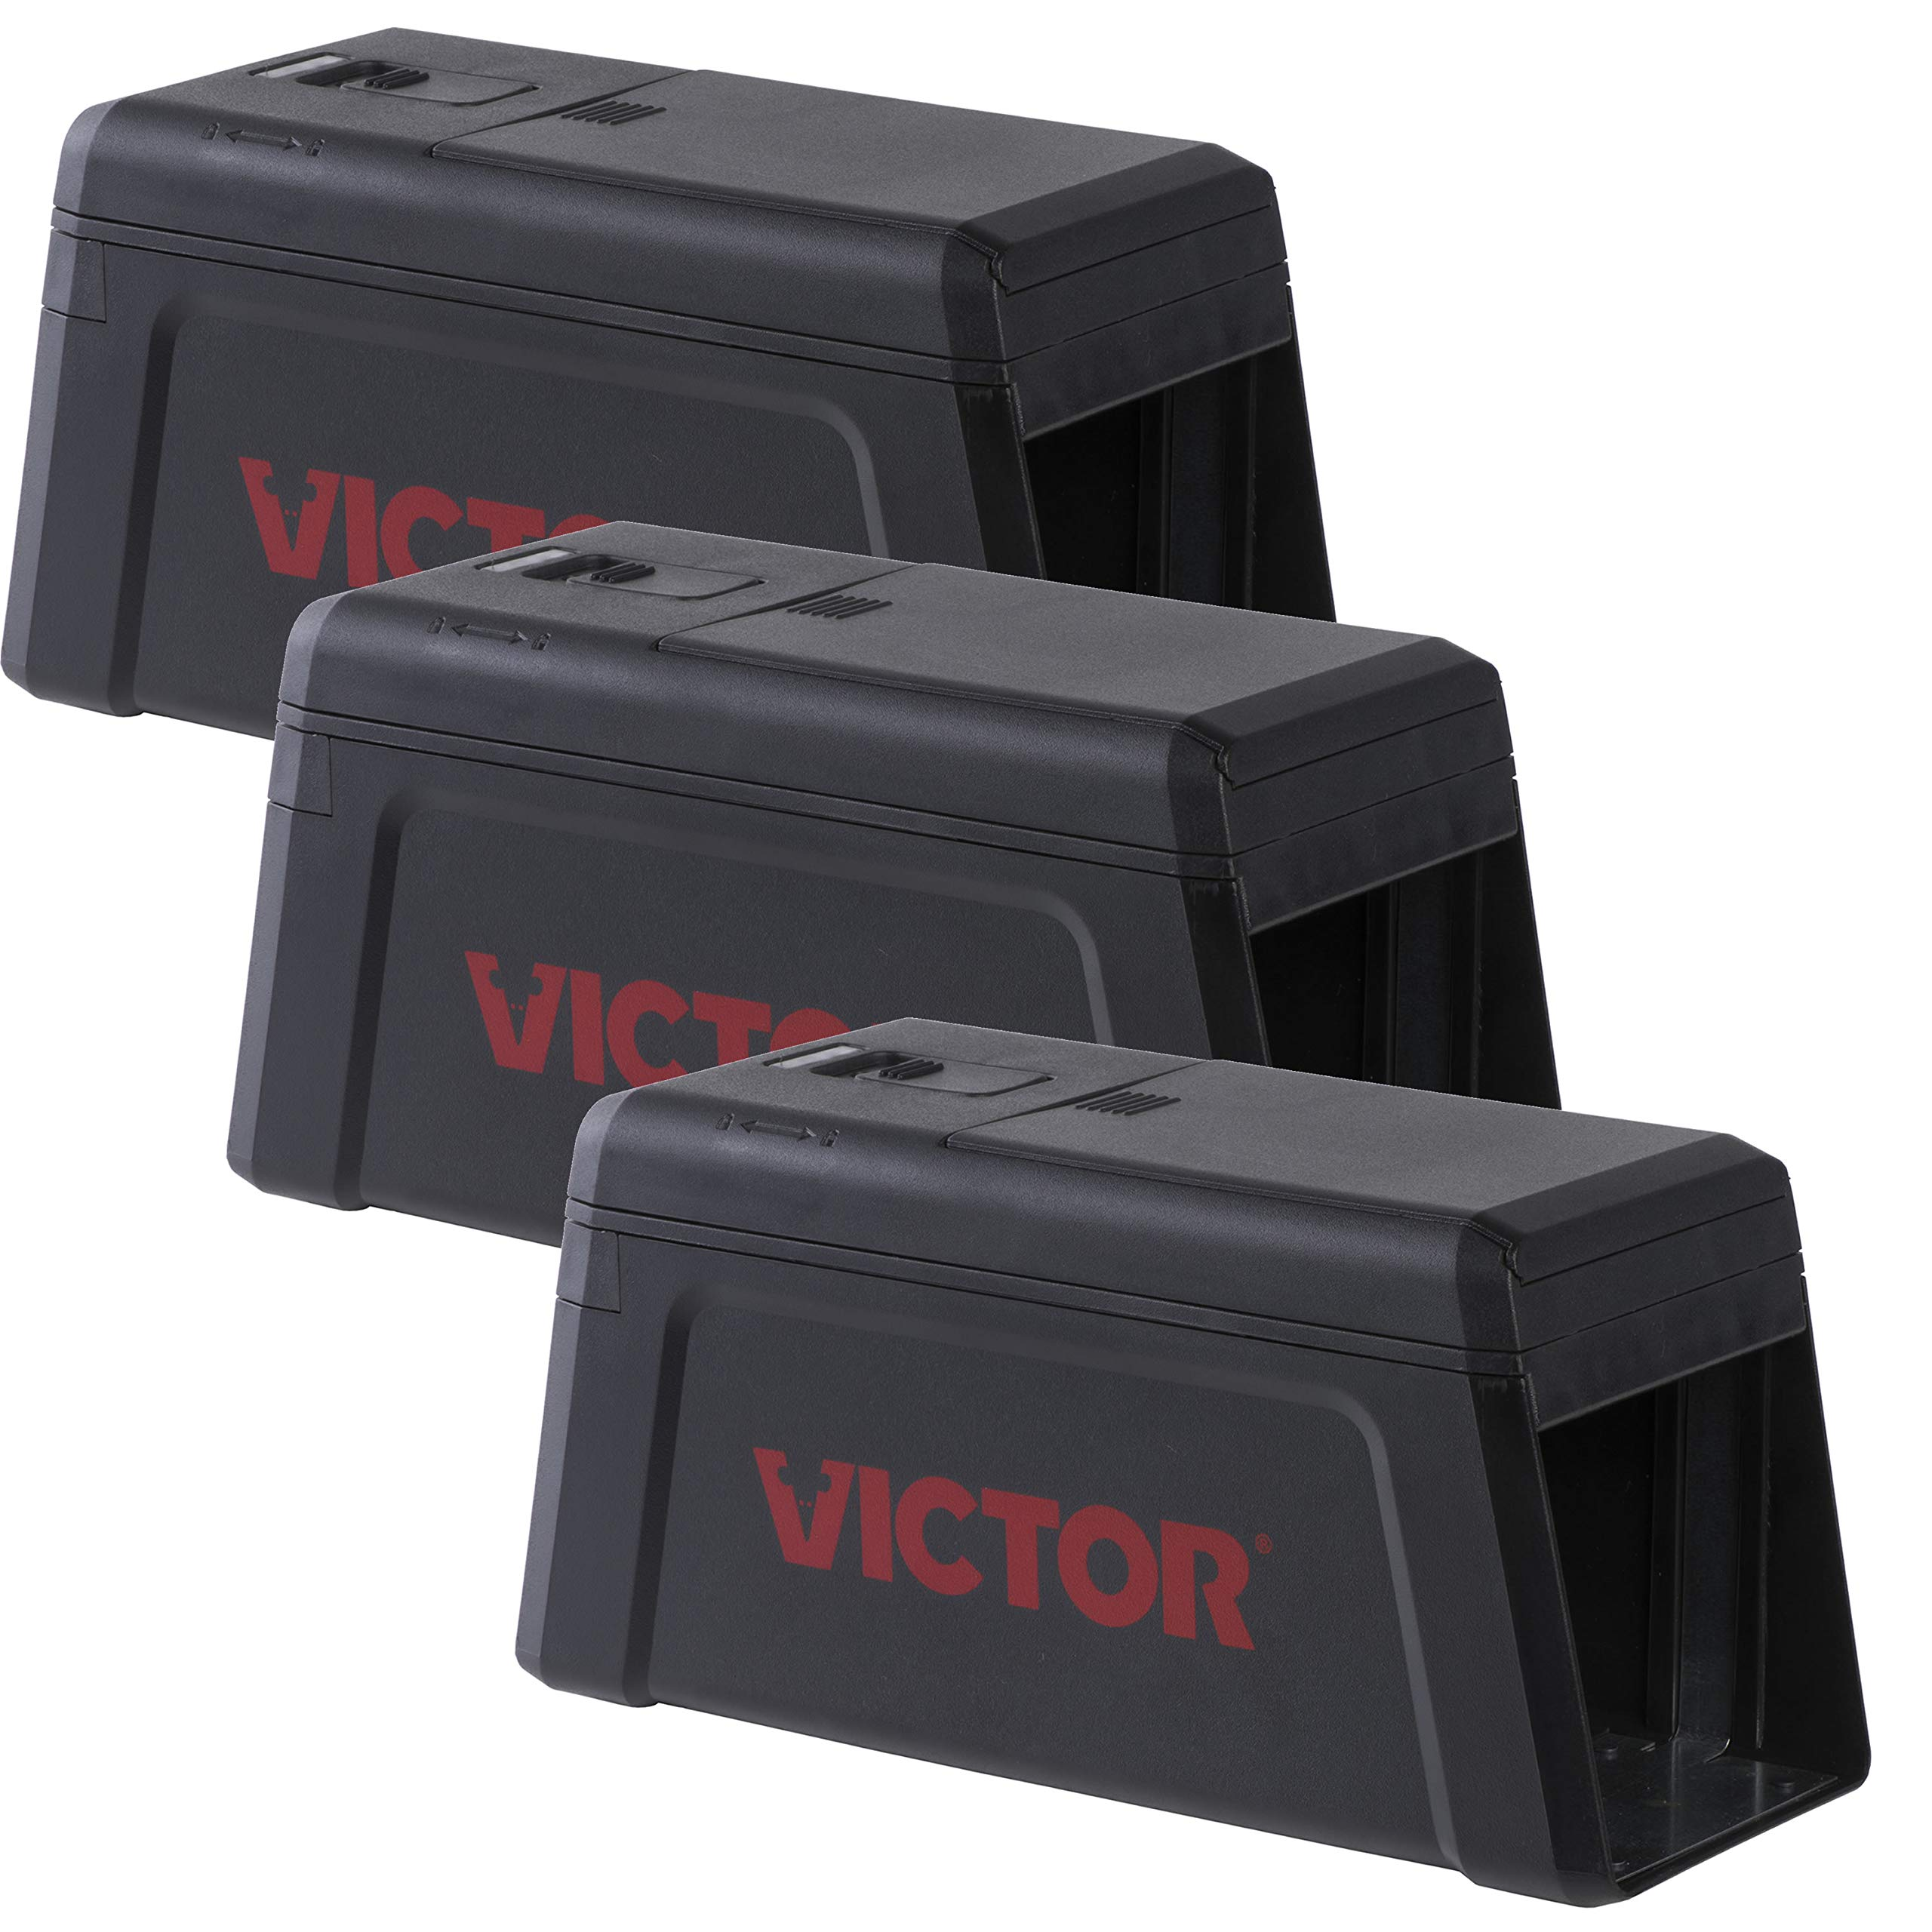 Victor M241SR-3 Electronic Rat Trap-3 Pack, Black by Victor